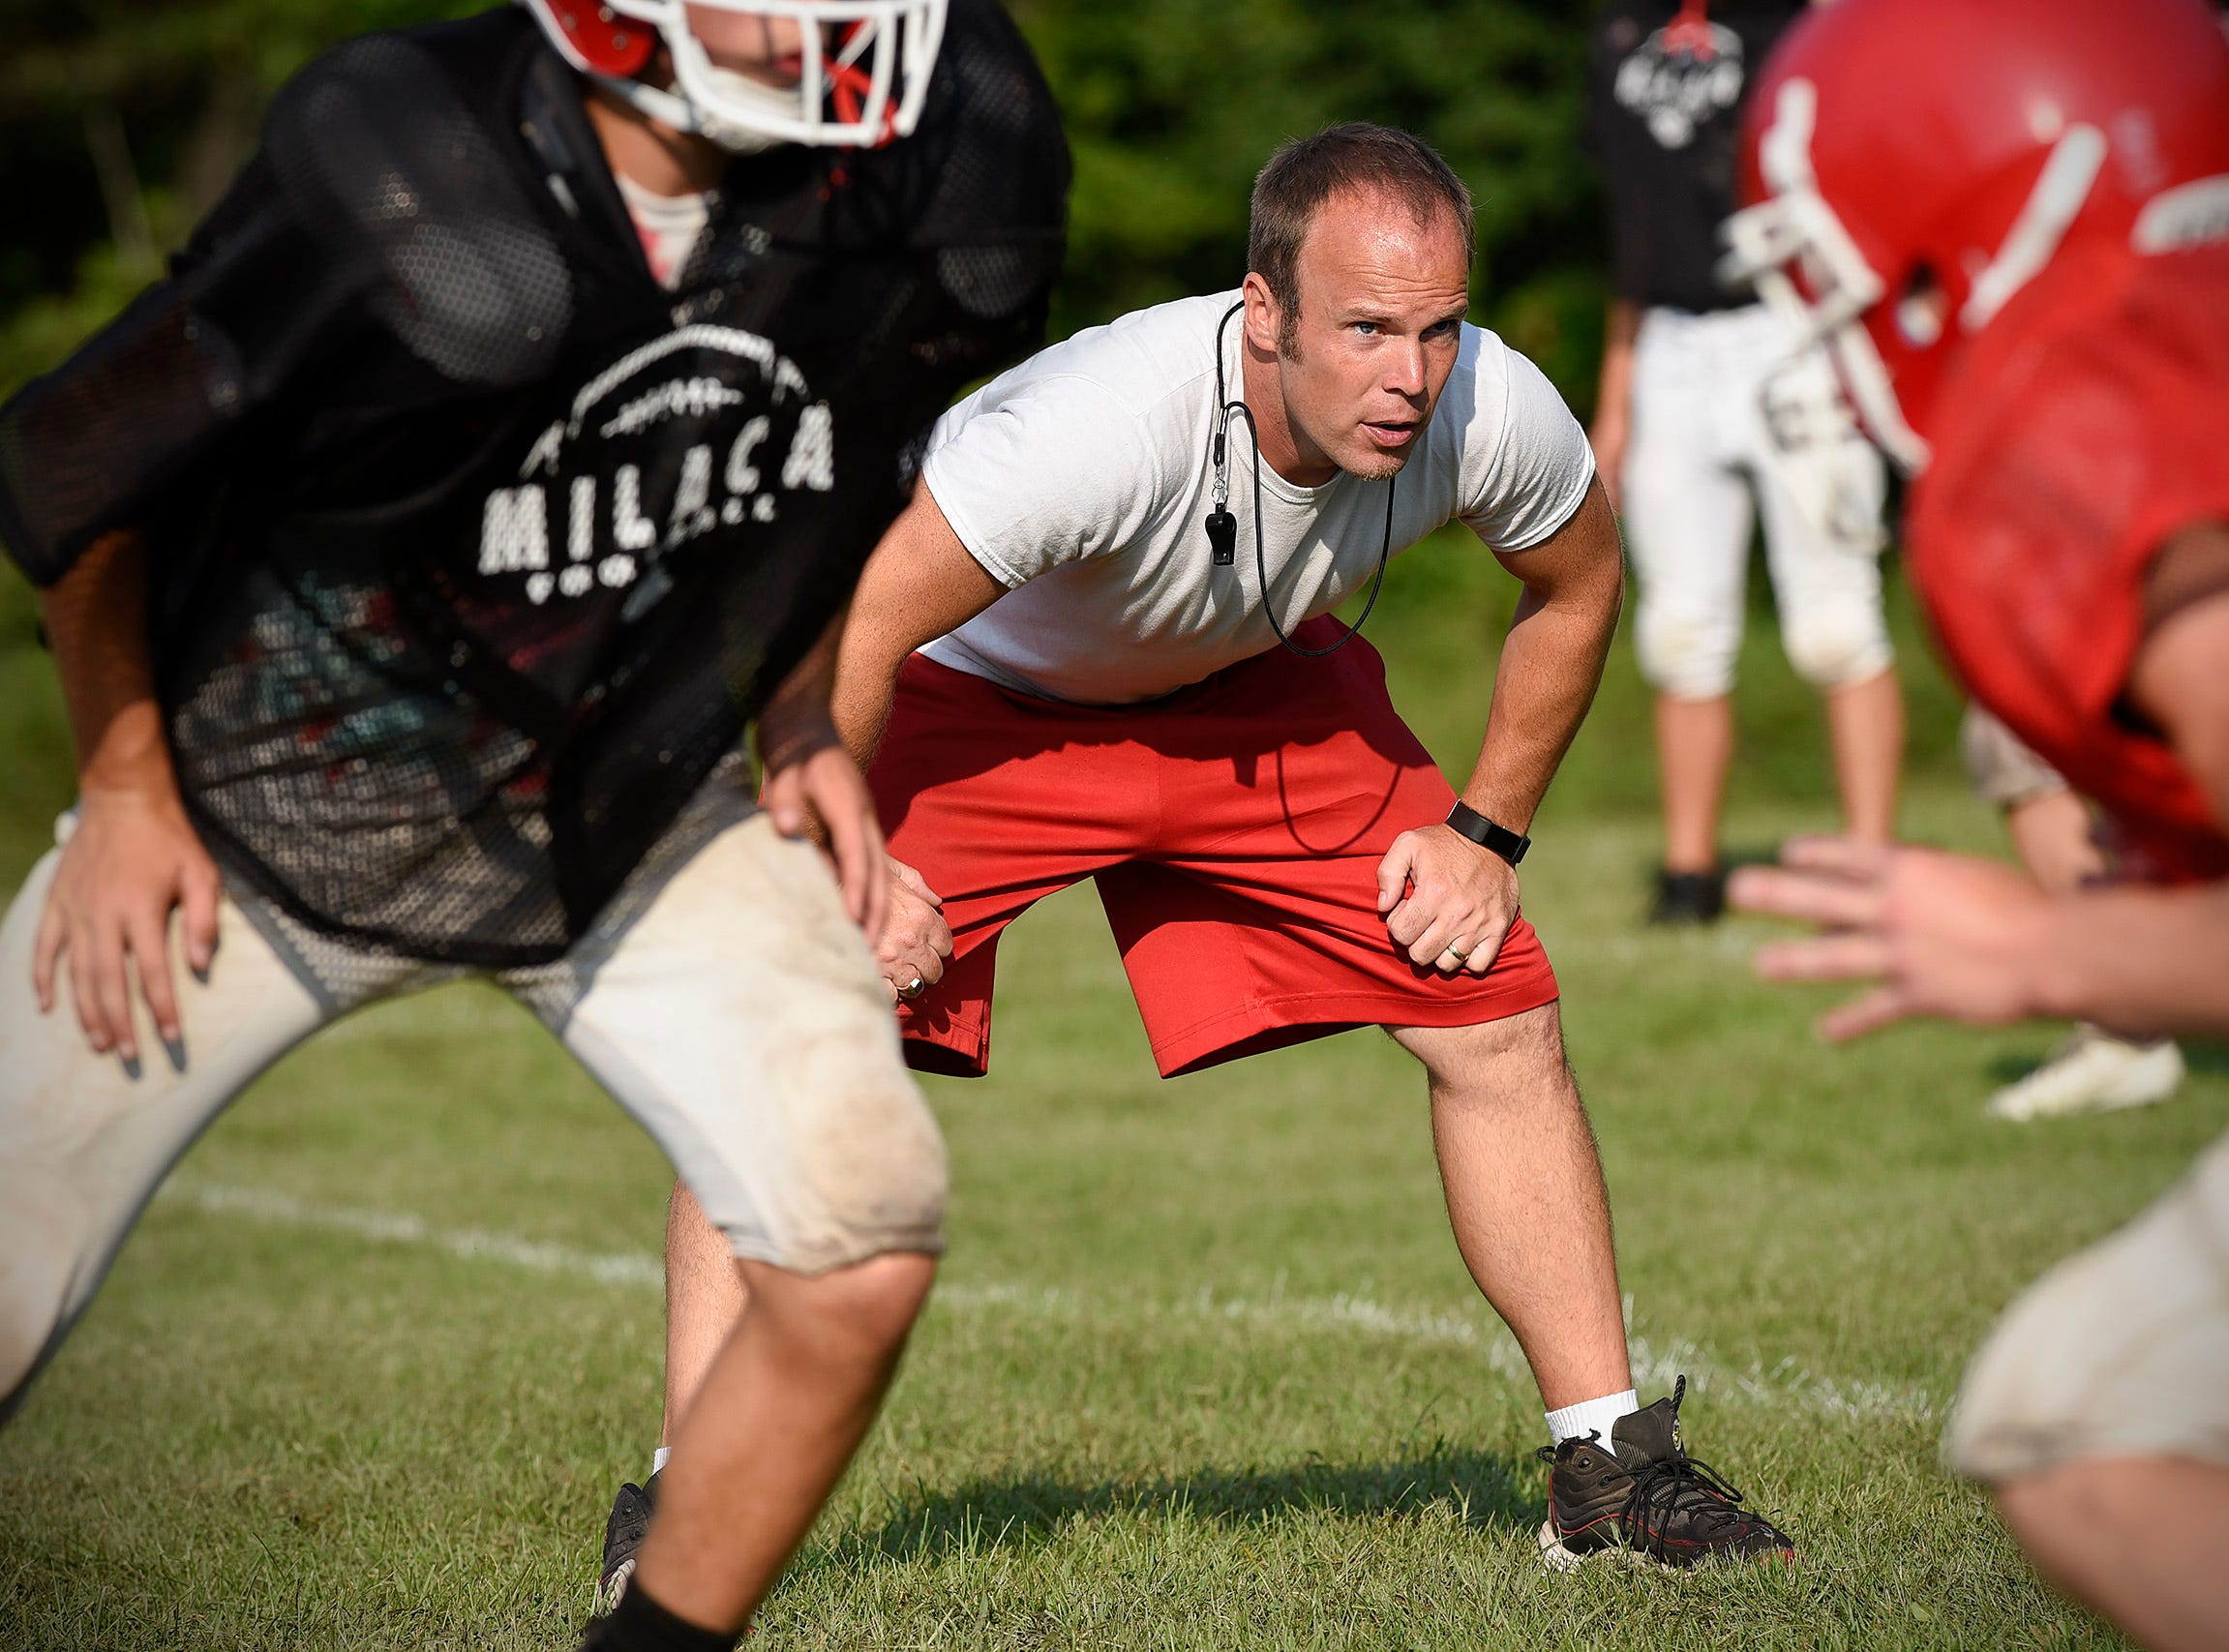 Milaca coach Kevin Kevin Armbrust watches a play during practice Thursday, Aug. 16, in Milaca.